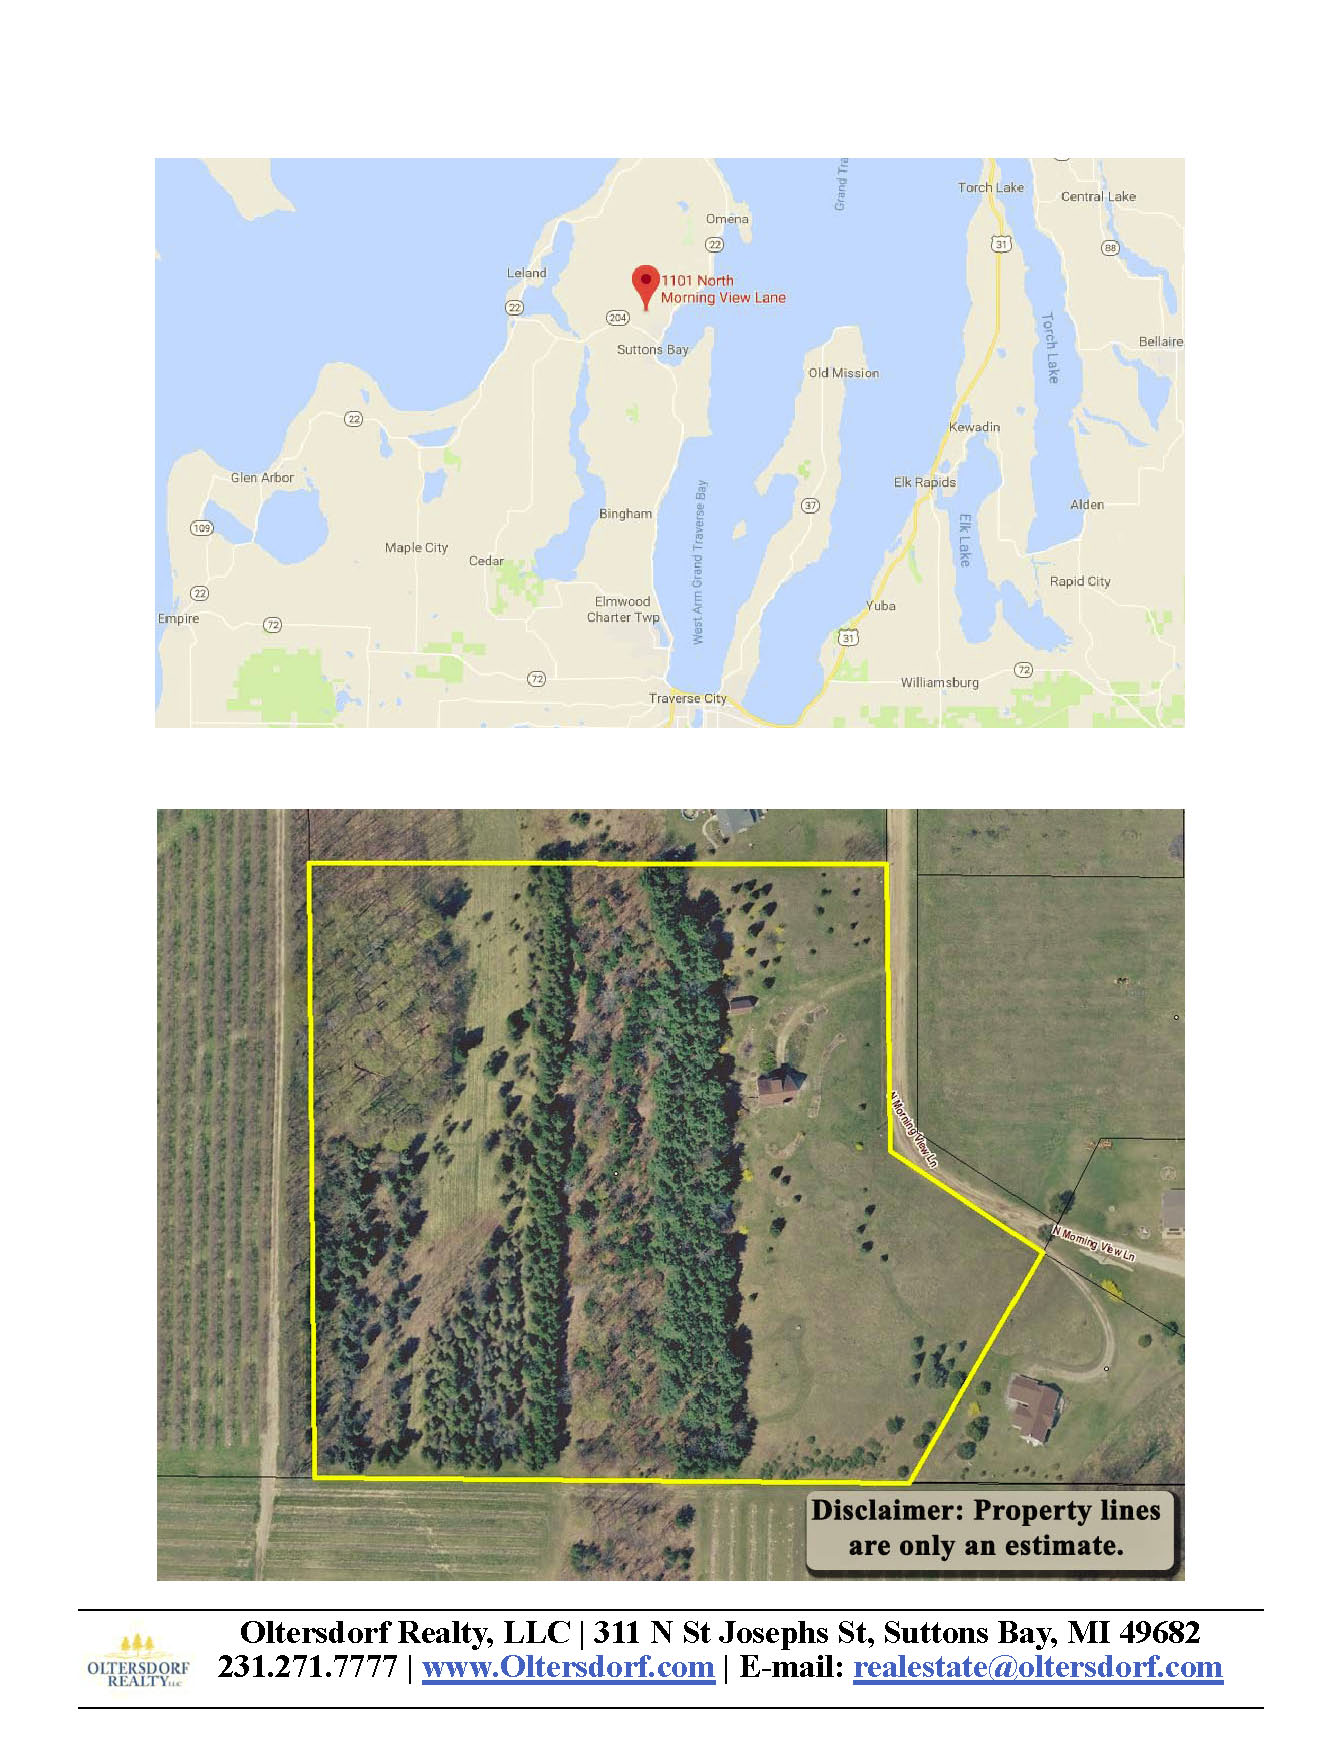 1101 N Morning View Lane, Suttons Bay – Marketing Packet For Sale by Oltersdorf Realty LLC (9).jpg